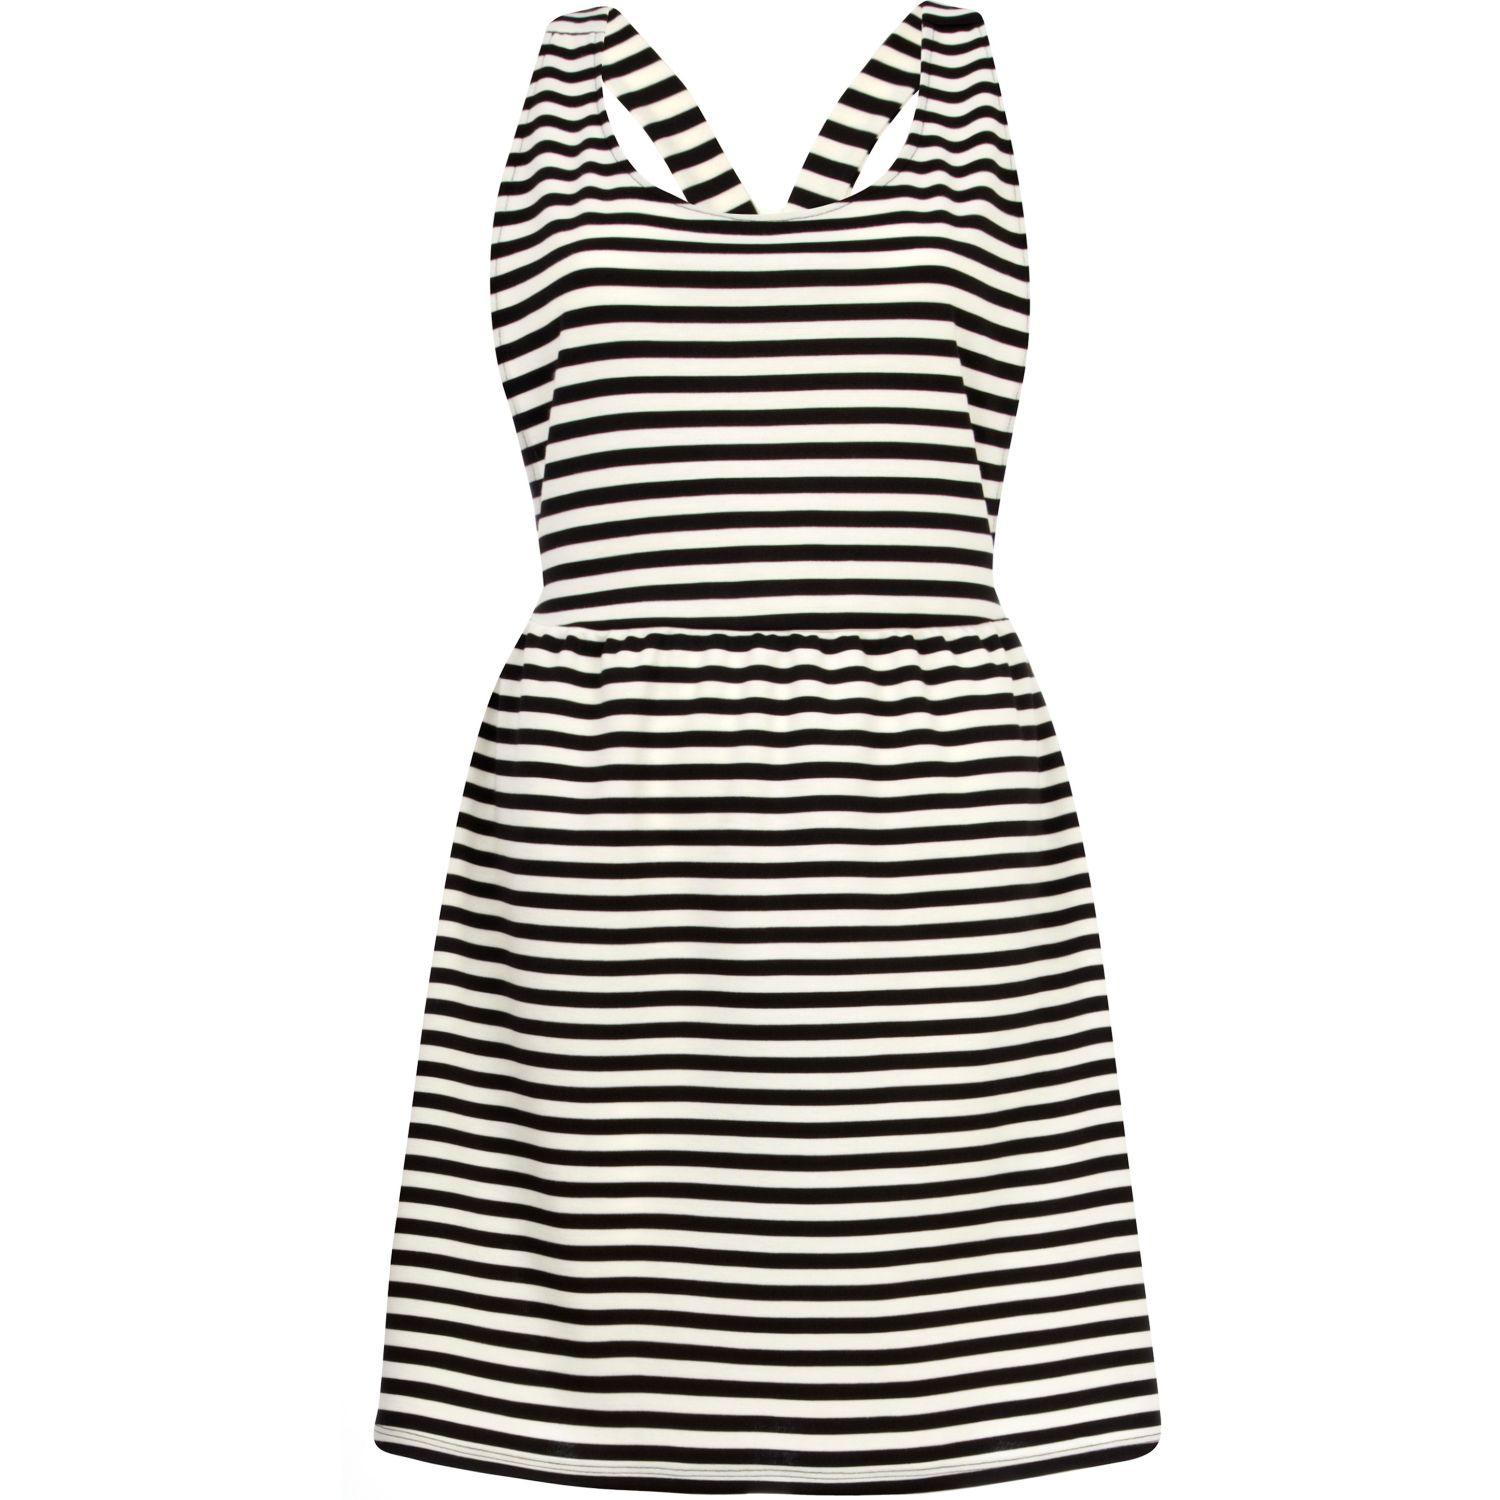 River island black and white striped dress